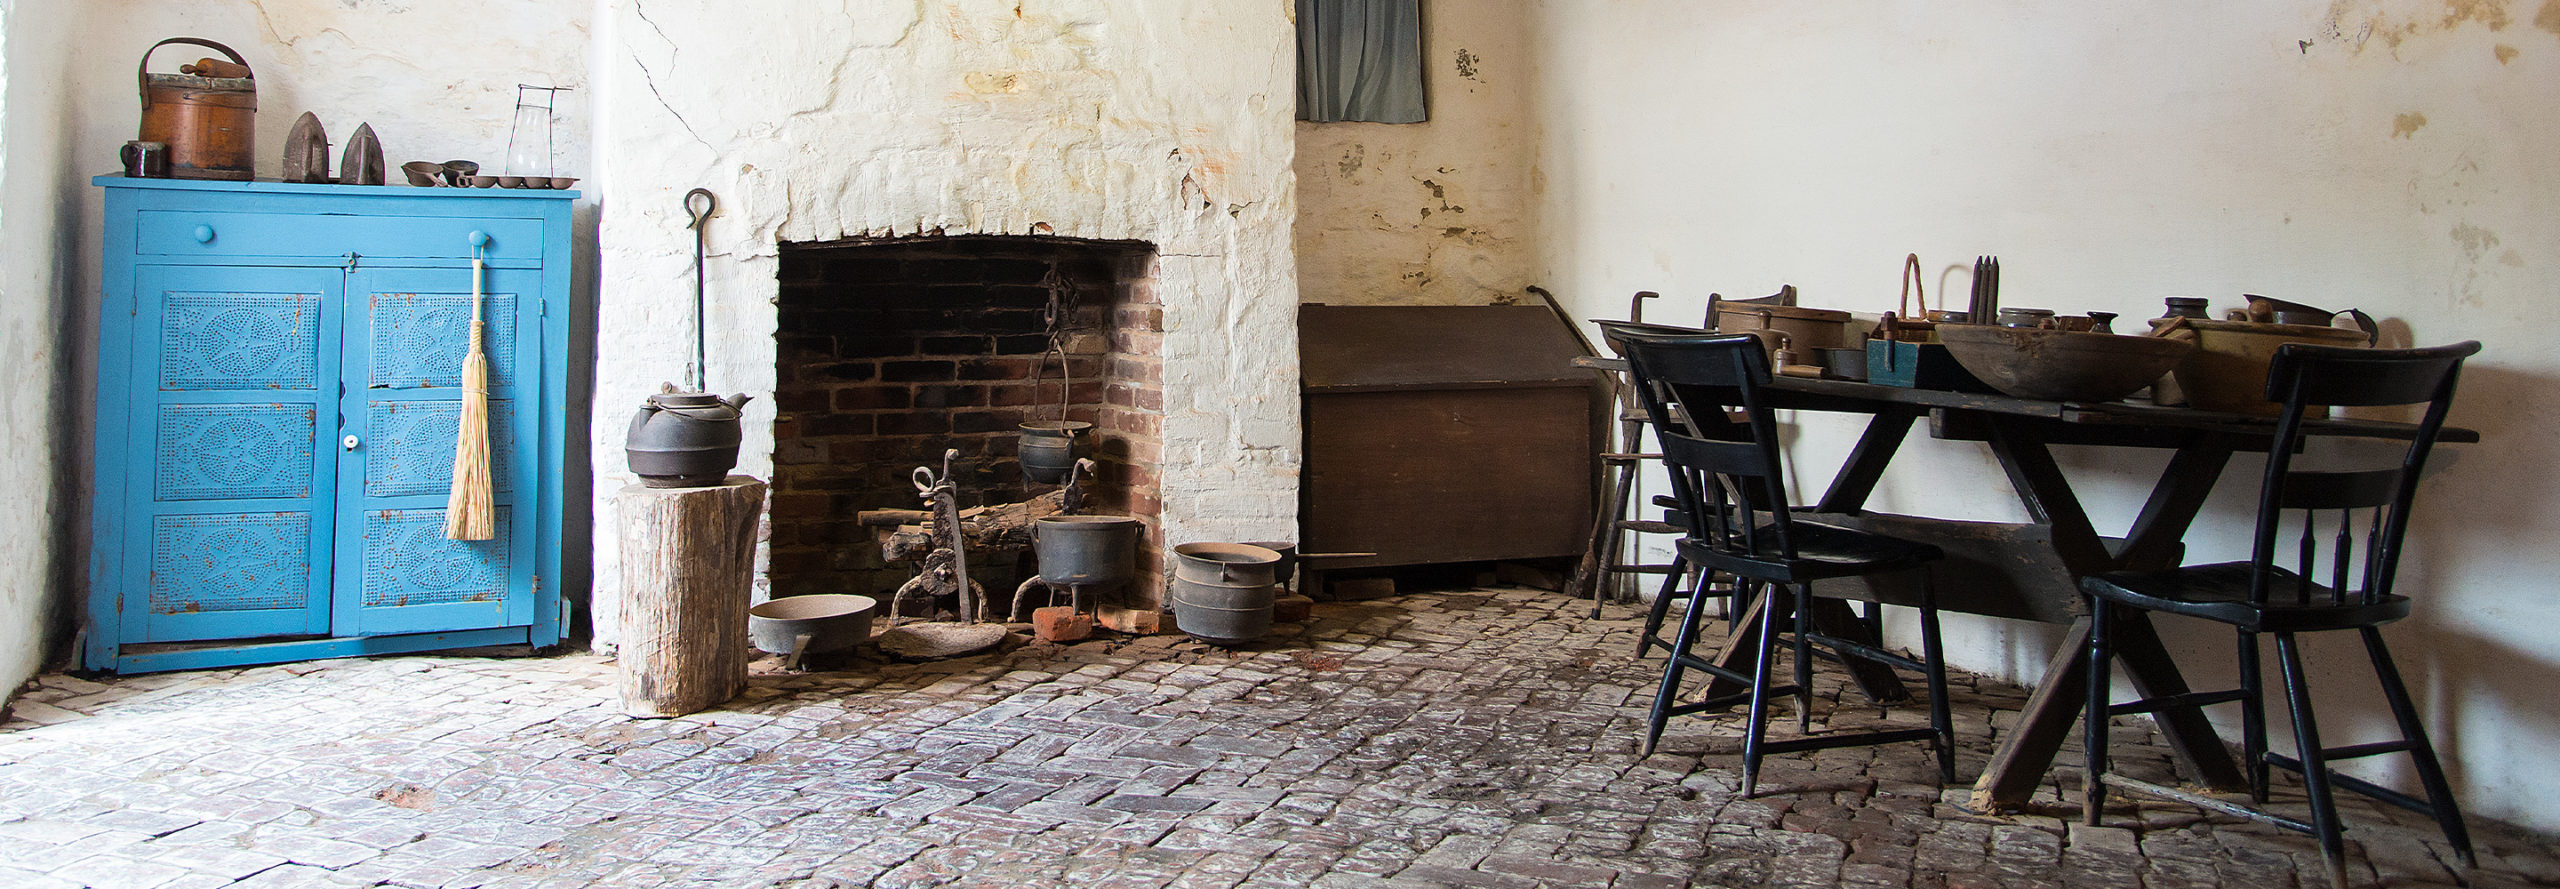 Kitchen at Coffin House